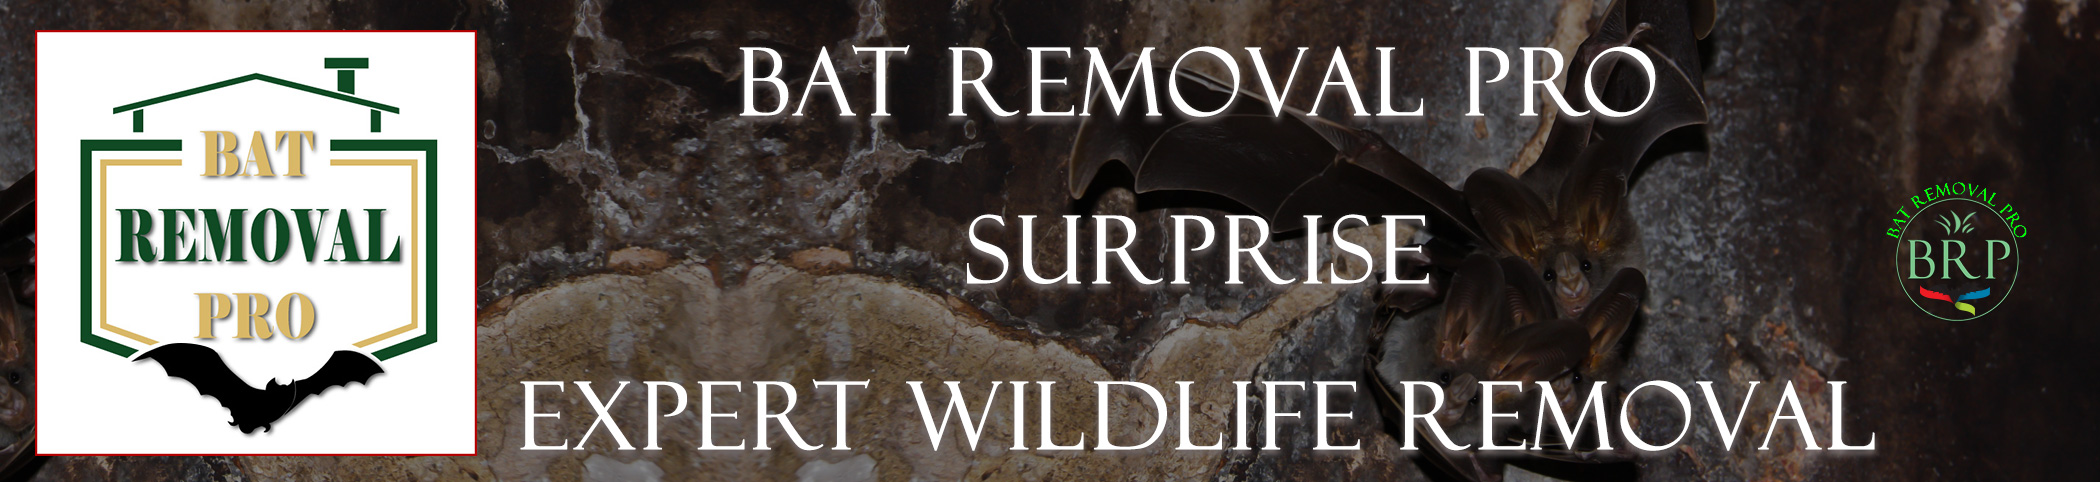 surprise_arizona_HEADER_IMAGE bat removal pro